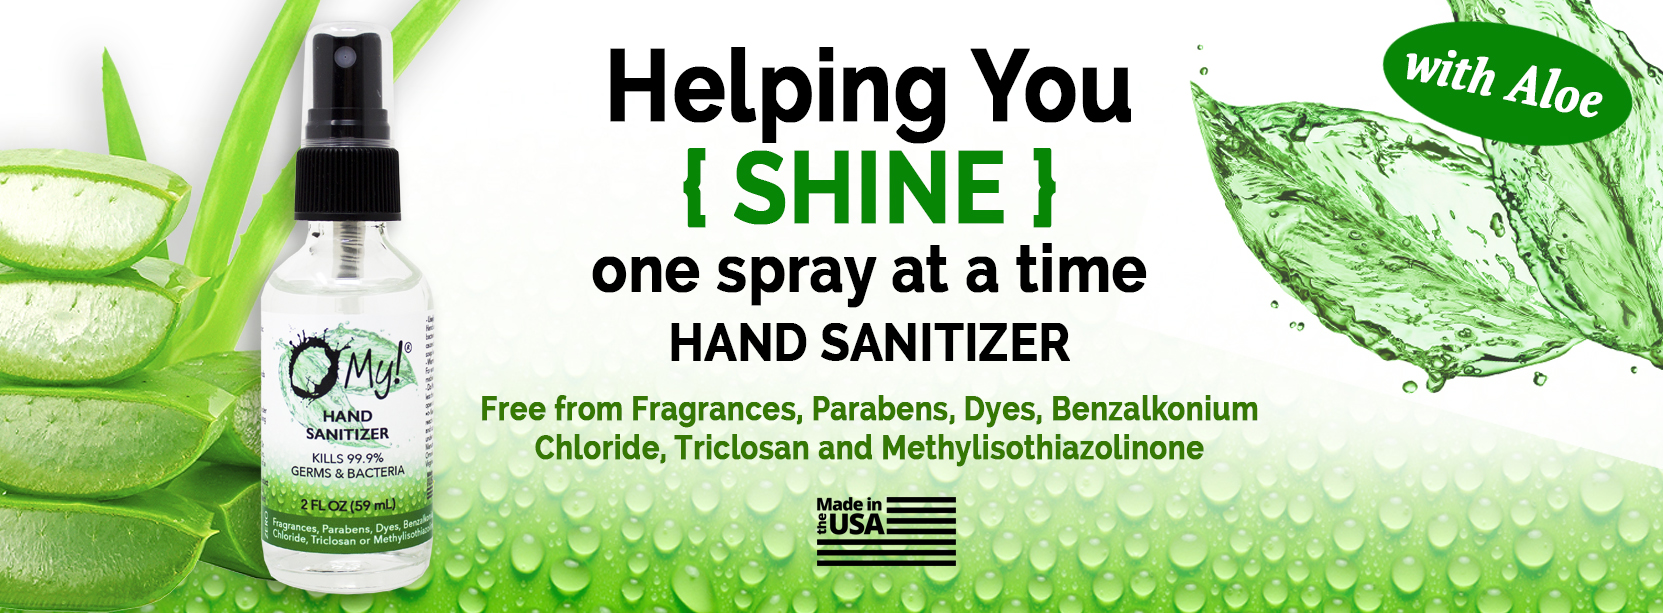 O My! Hand Sanitizer - Made in USA - 70% Alcohol